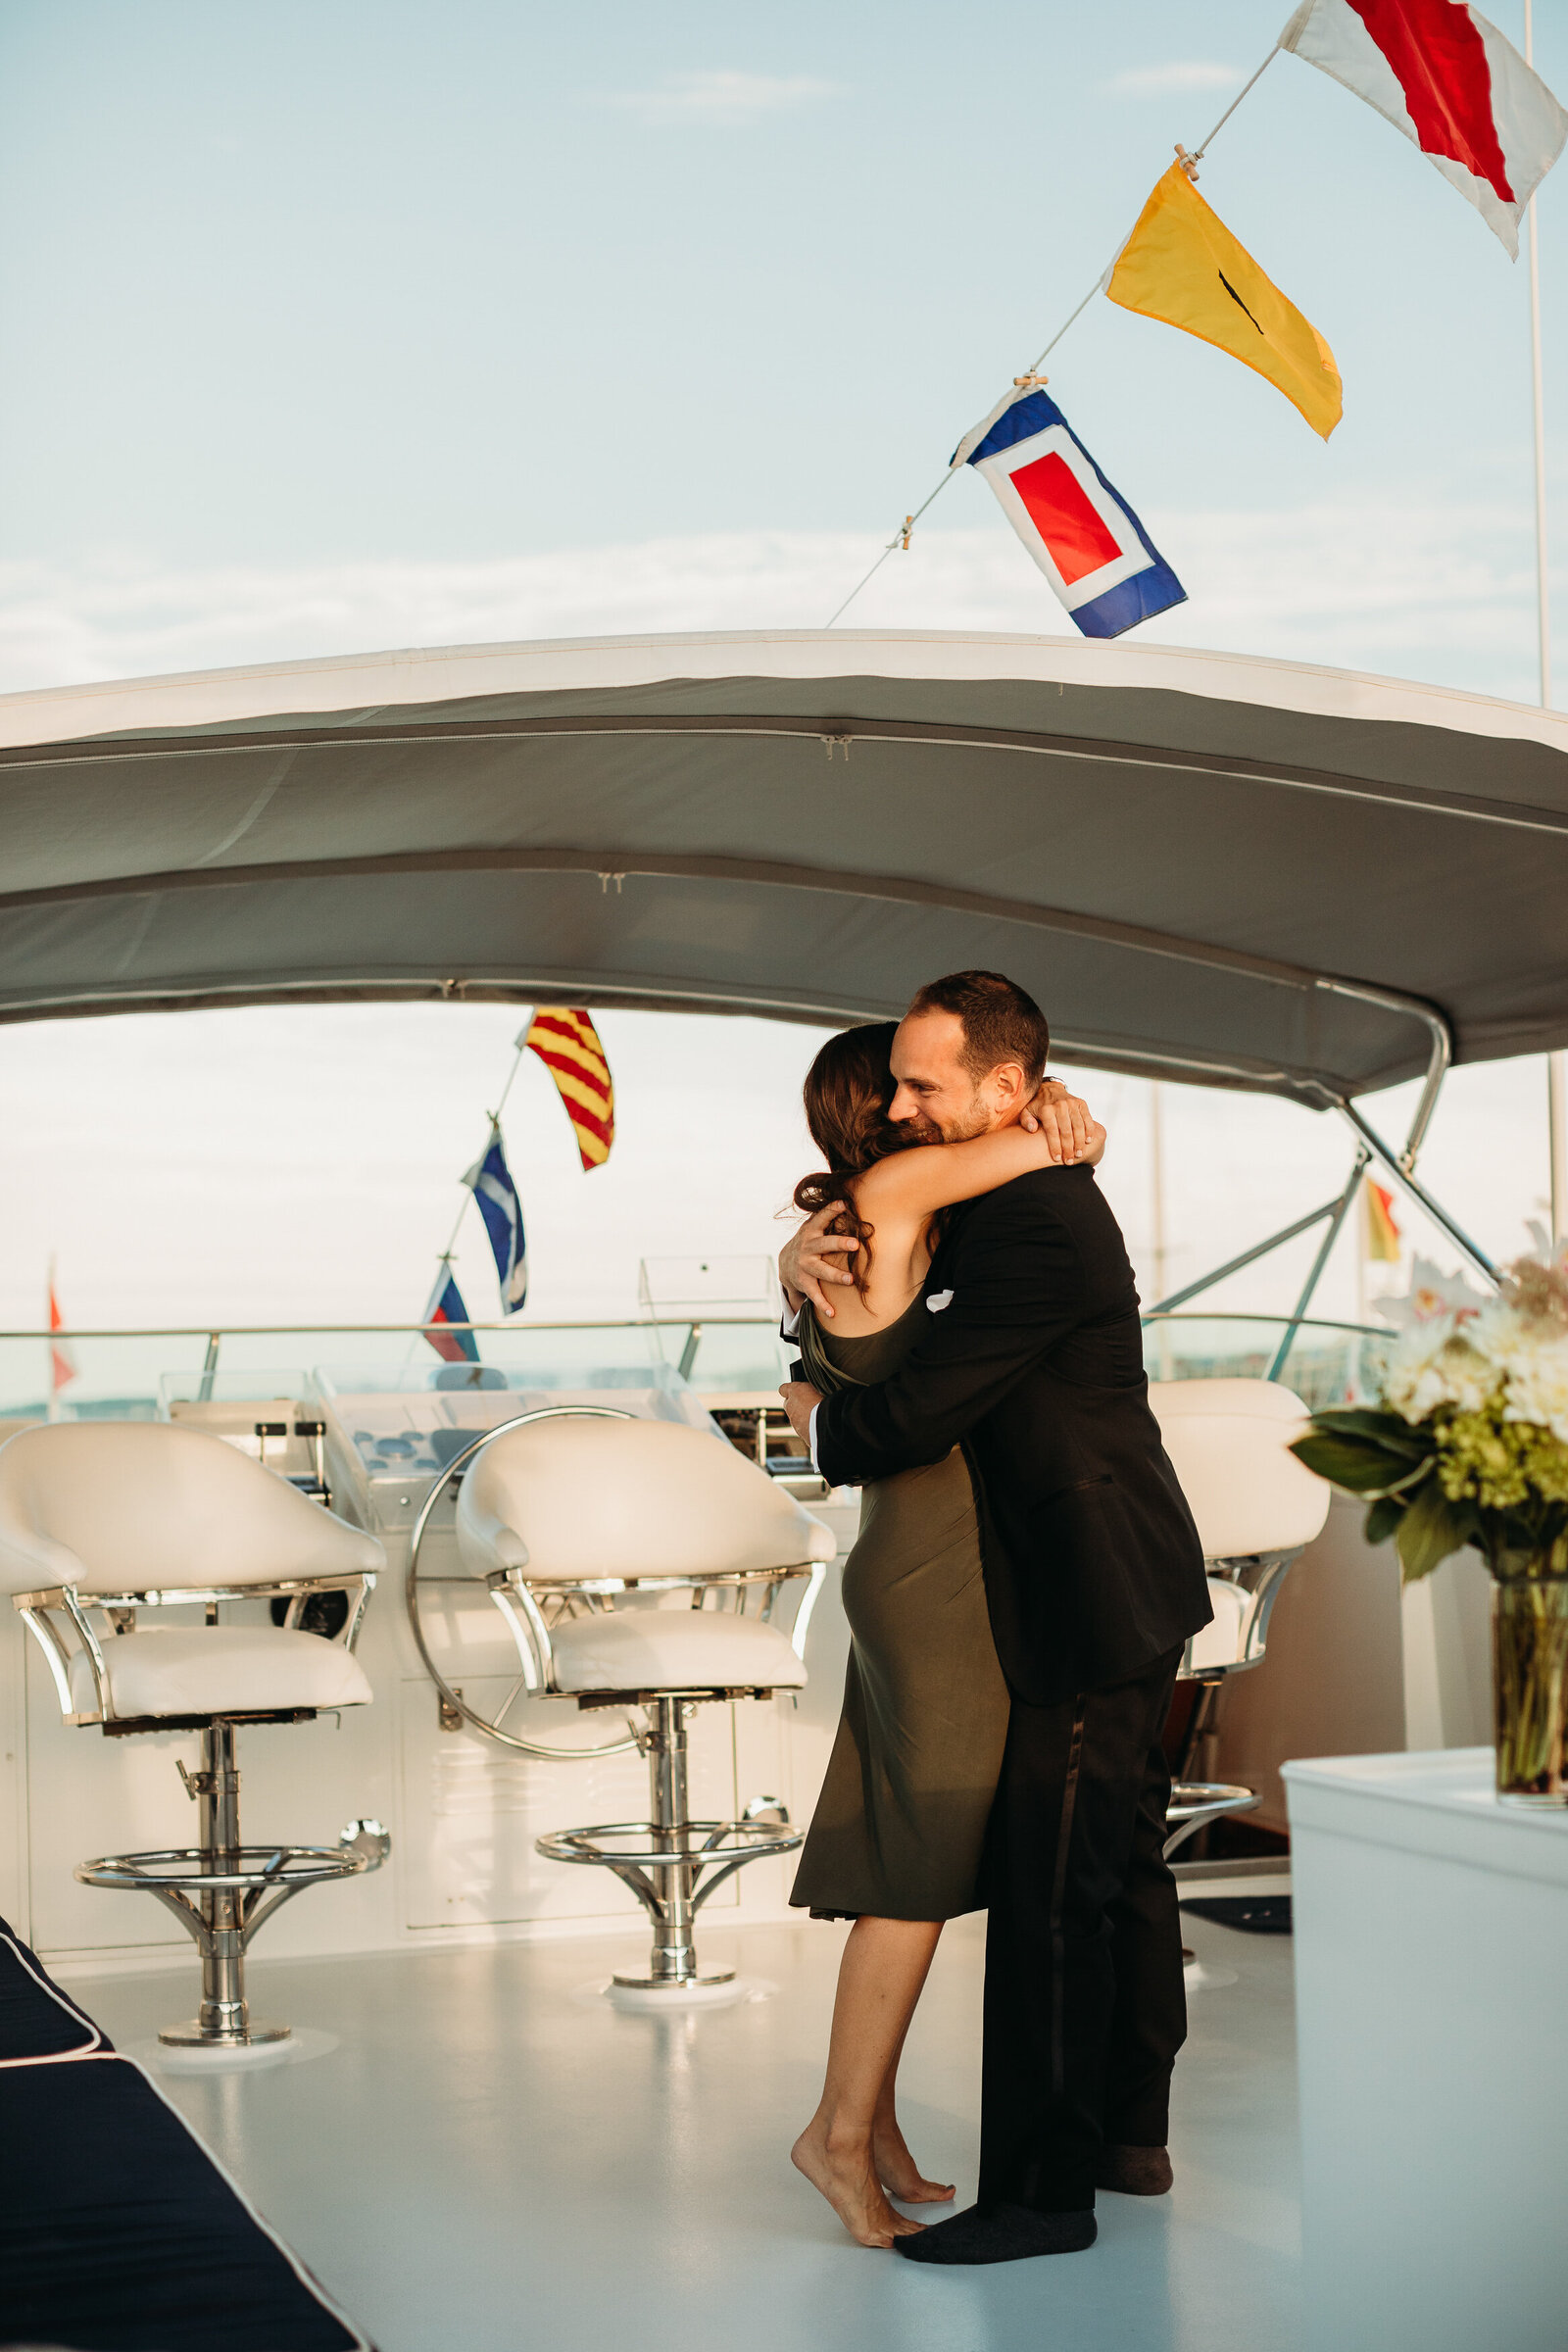 couple embrace after proposal onboard a yacht